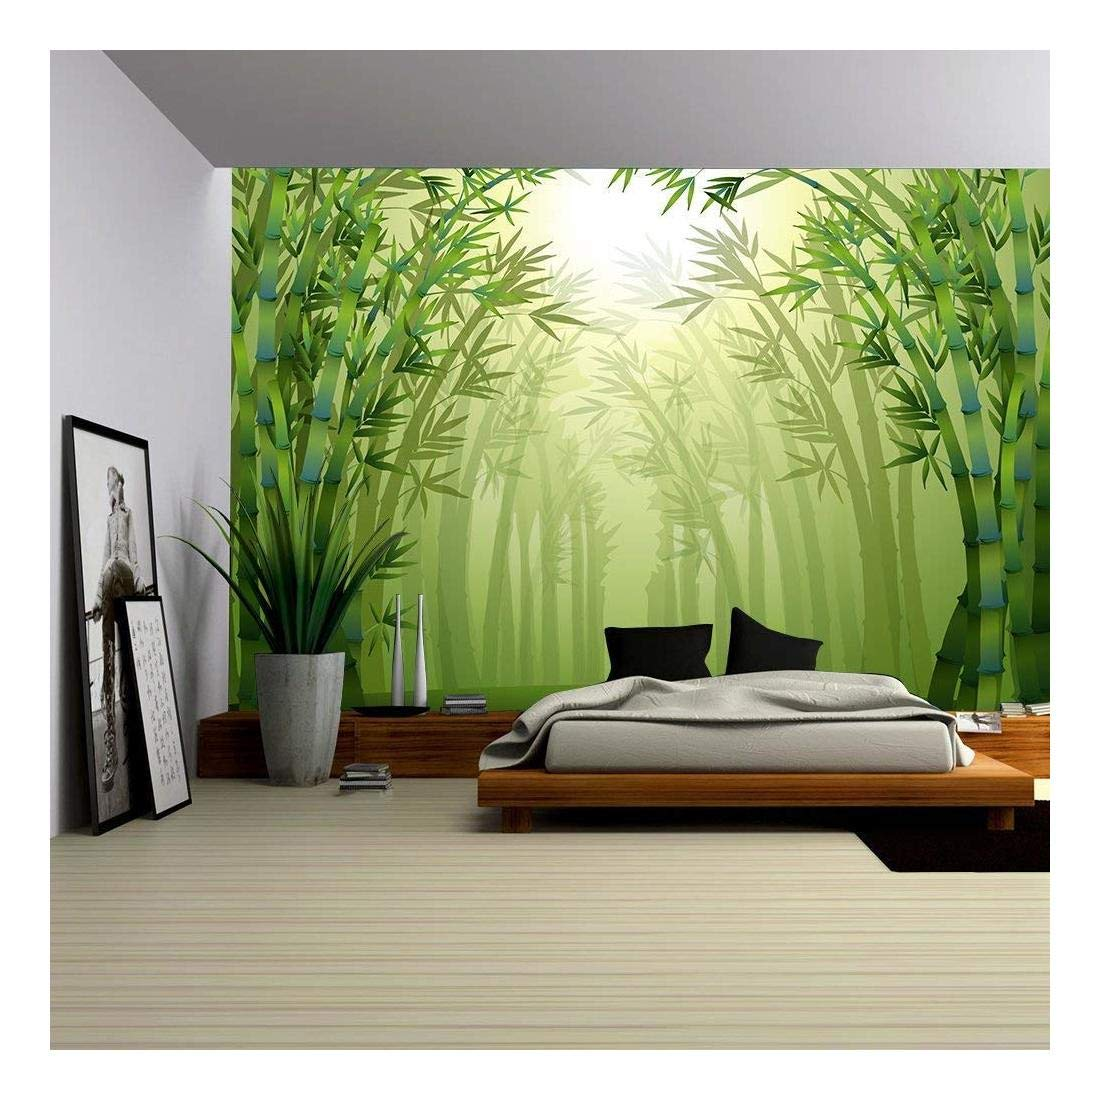 Forest Hiking Trail Green Trees Wall Mural Photo Wallpaper GIANT WALL DECOR